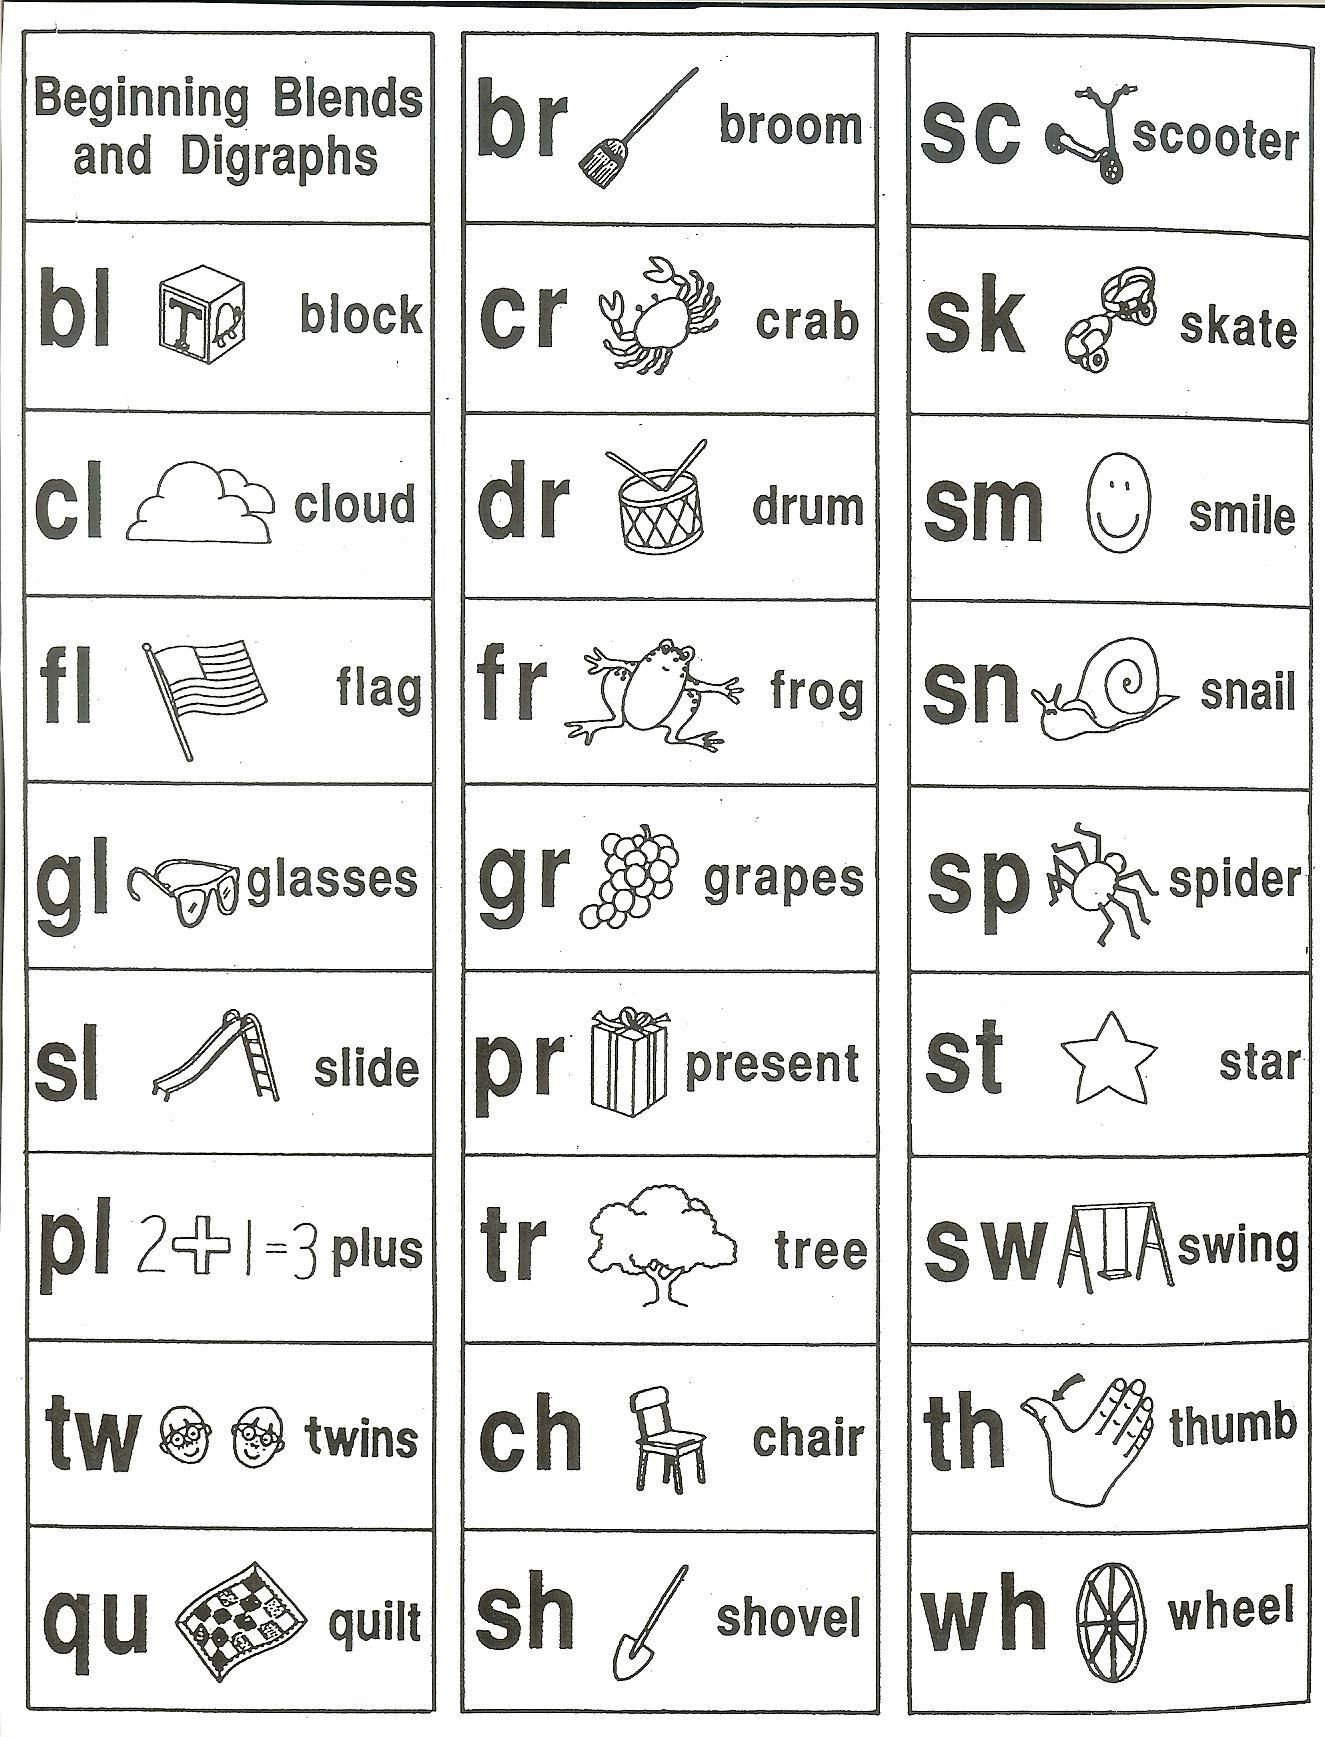 Uncategorized Blends And Digraphs Worksheets beginning blends and digraphs good to put in writing folder folder